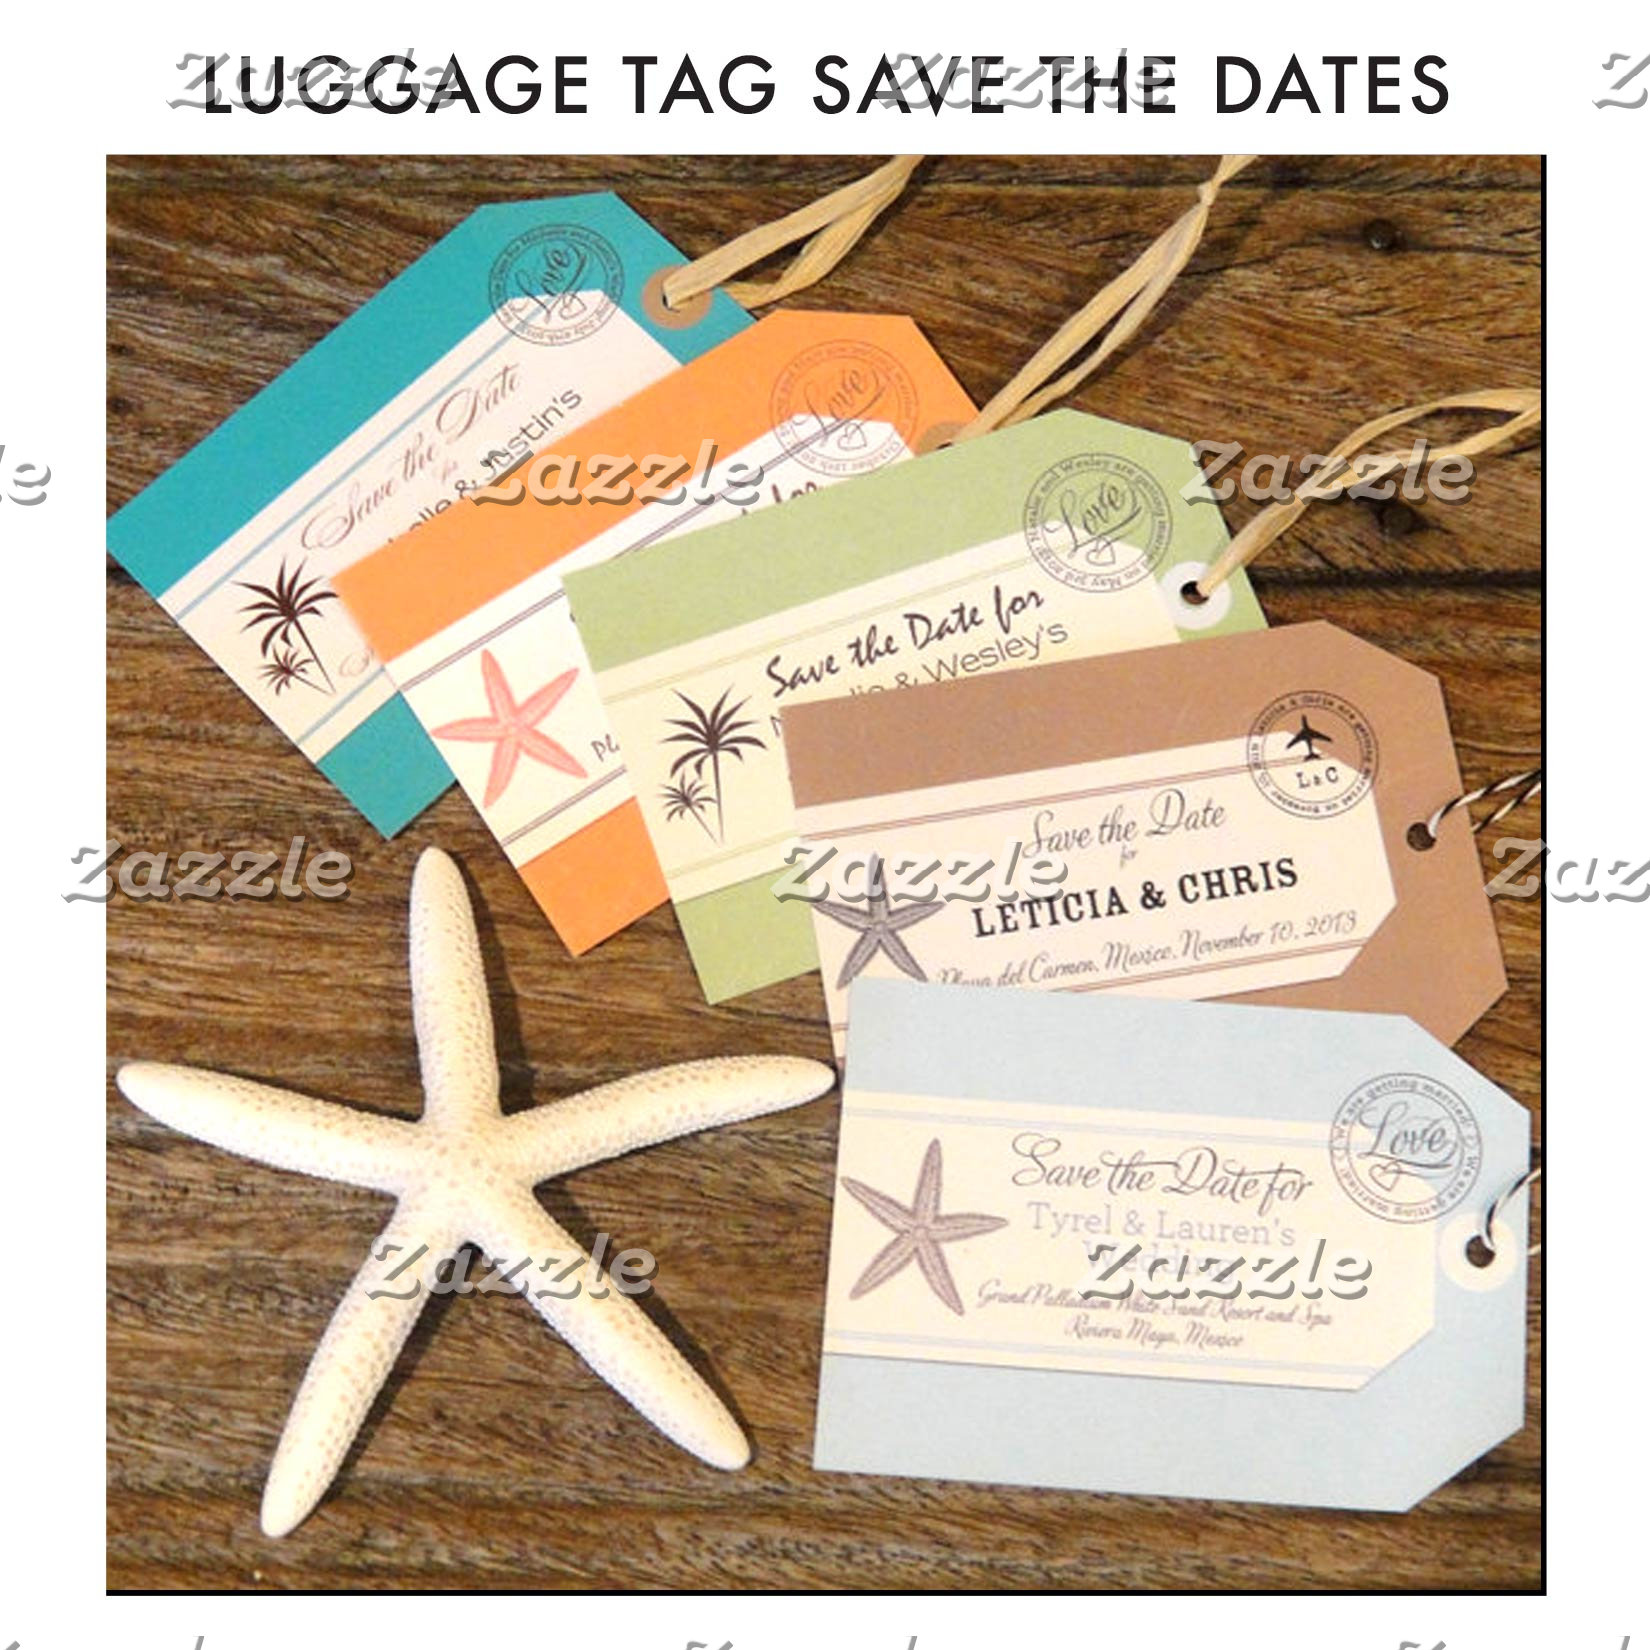 Luggage Tag Save the Dates